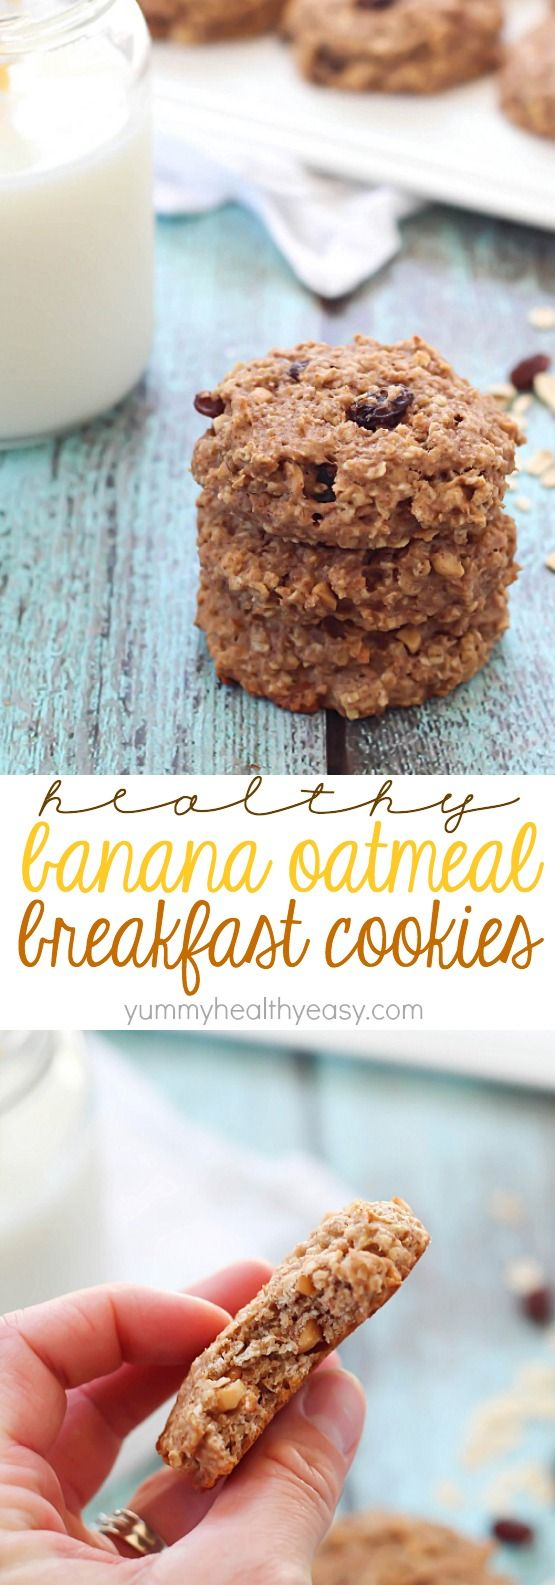 These Healthy Banana Oatmeal Breakfast Cookies are SO easy to make, have no butter or oil, and have only 165 calories in each cookie + 6g of protein!